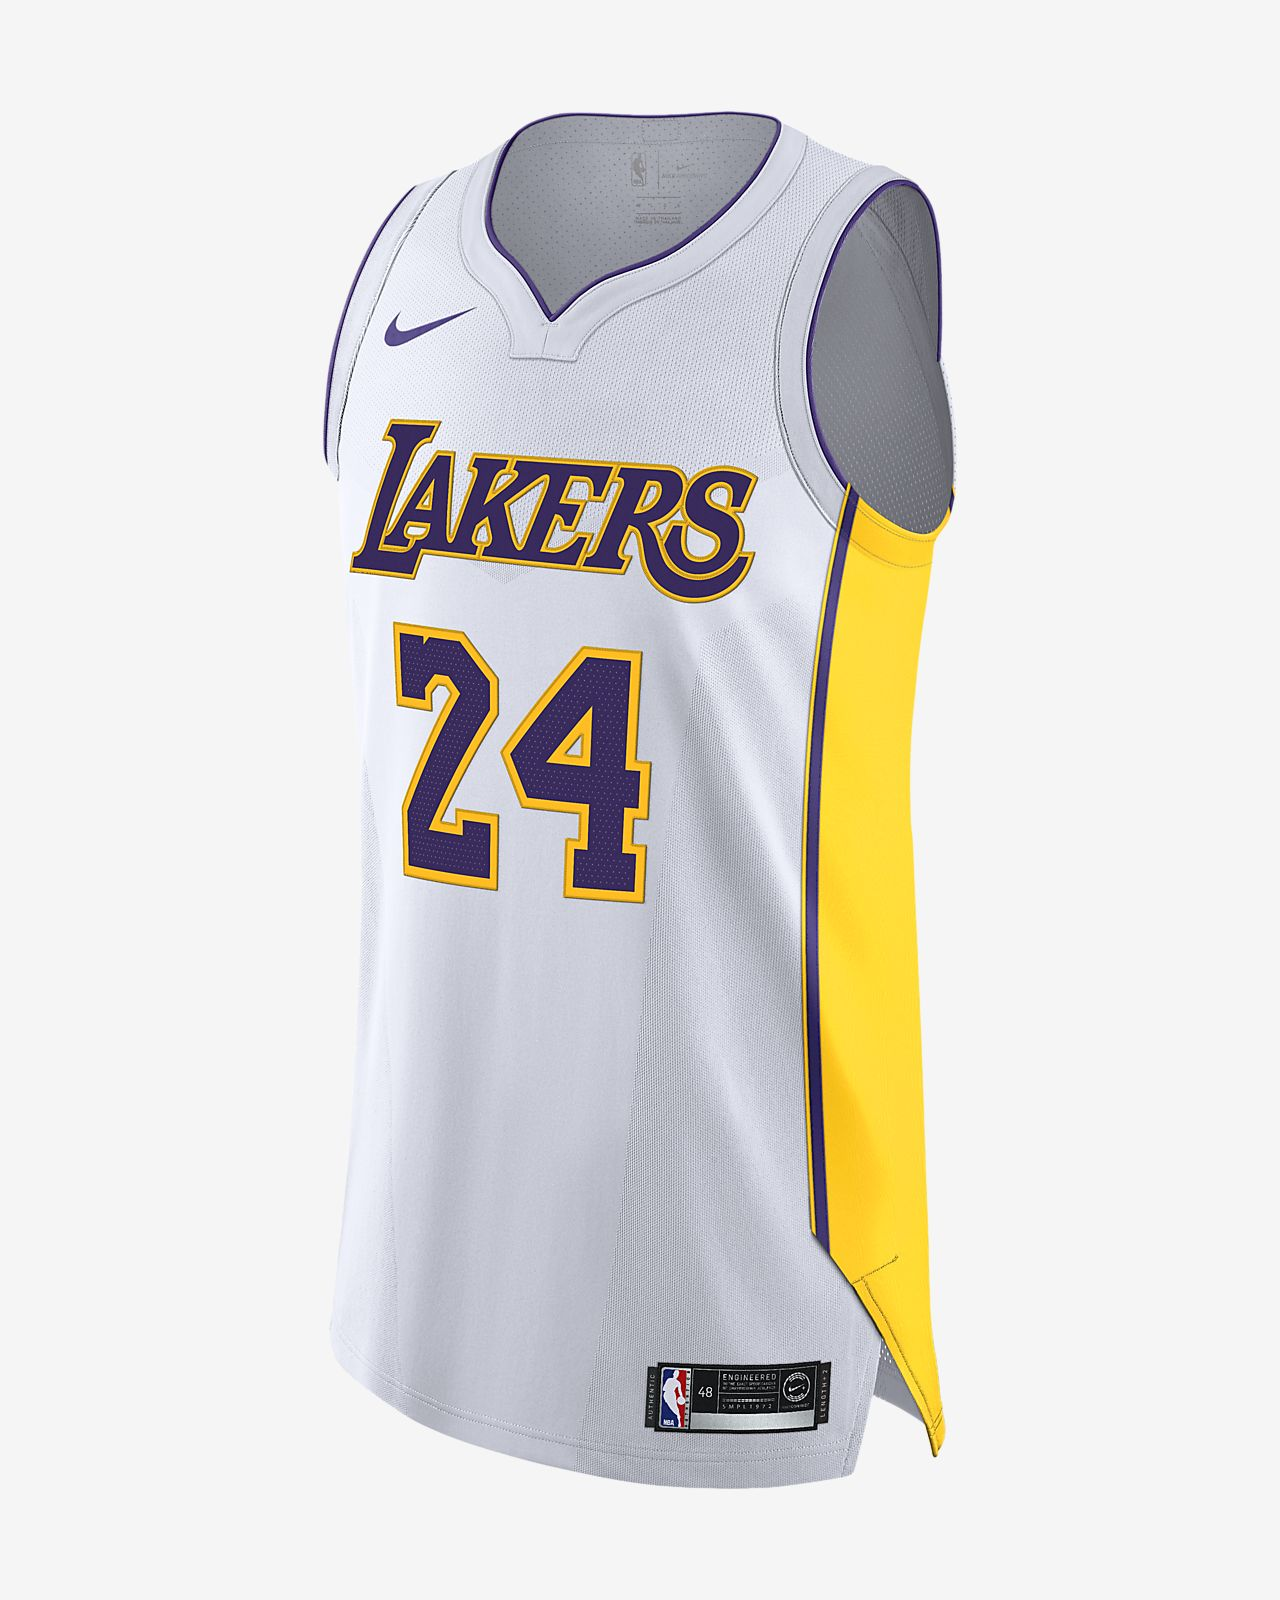 info for 498ad 36022 ... release date nike nba connected jersey kobe bryant association edition  authentic los angeles lakers för män